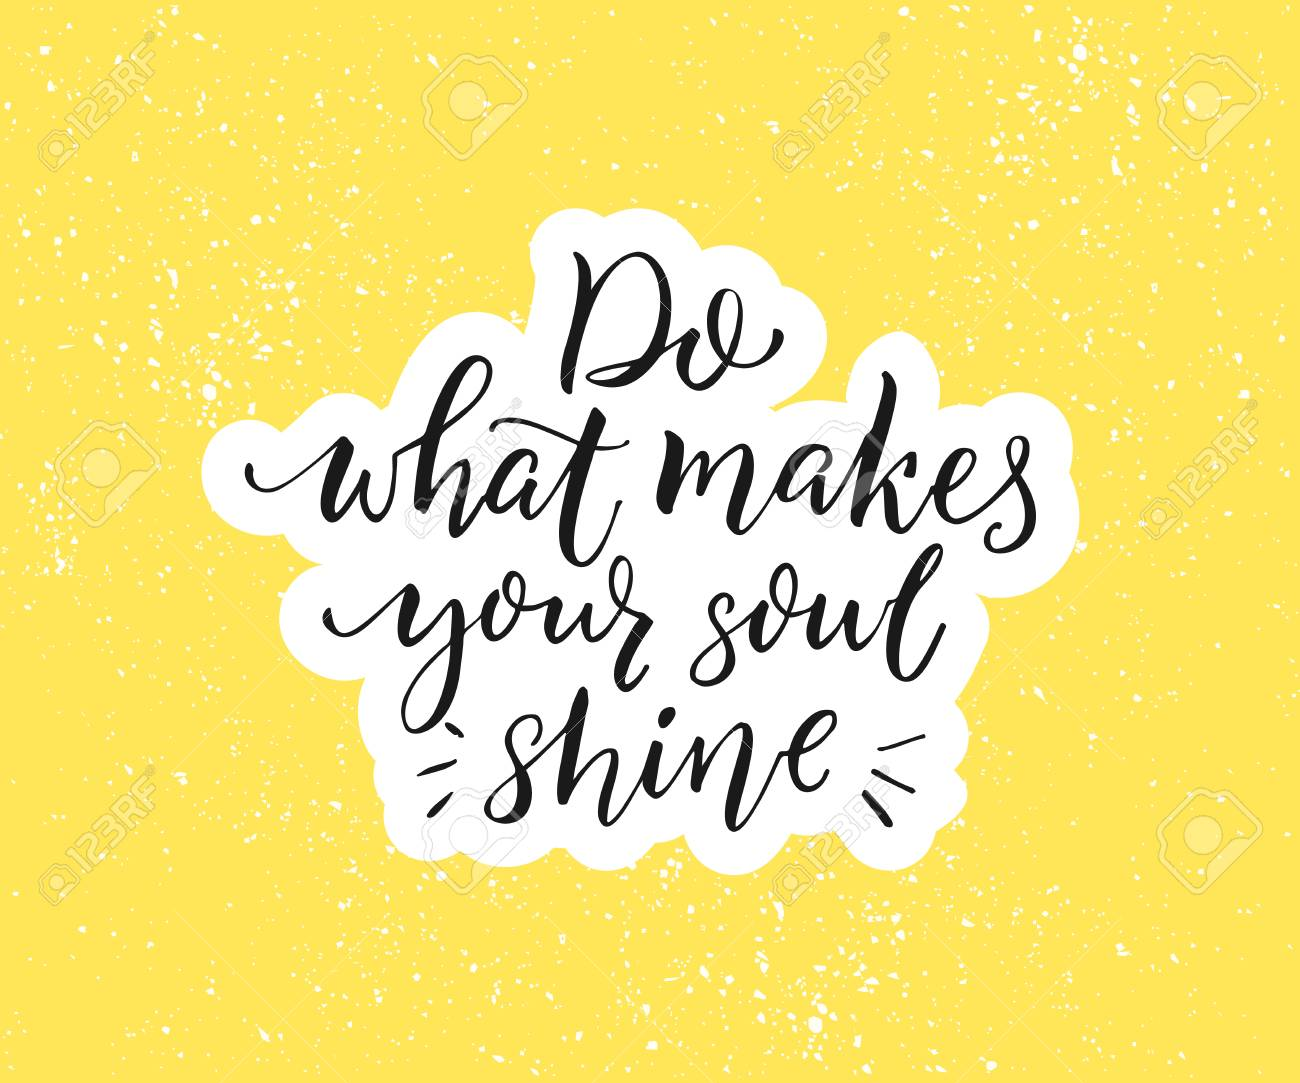 Do what makes your soul shine. Positive inspirational quote. Black brush calligraphy on yellow background. Motivational poster and greeting card vector design - 81628168